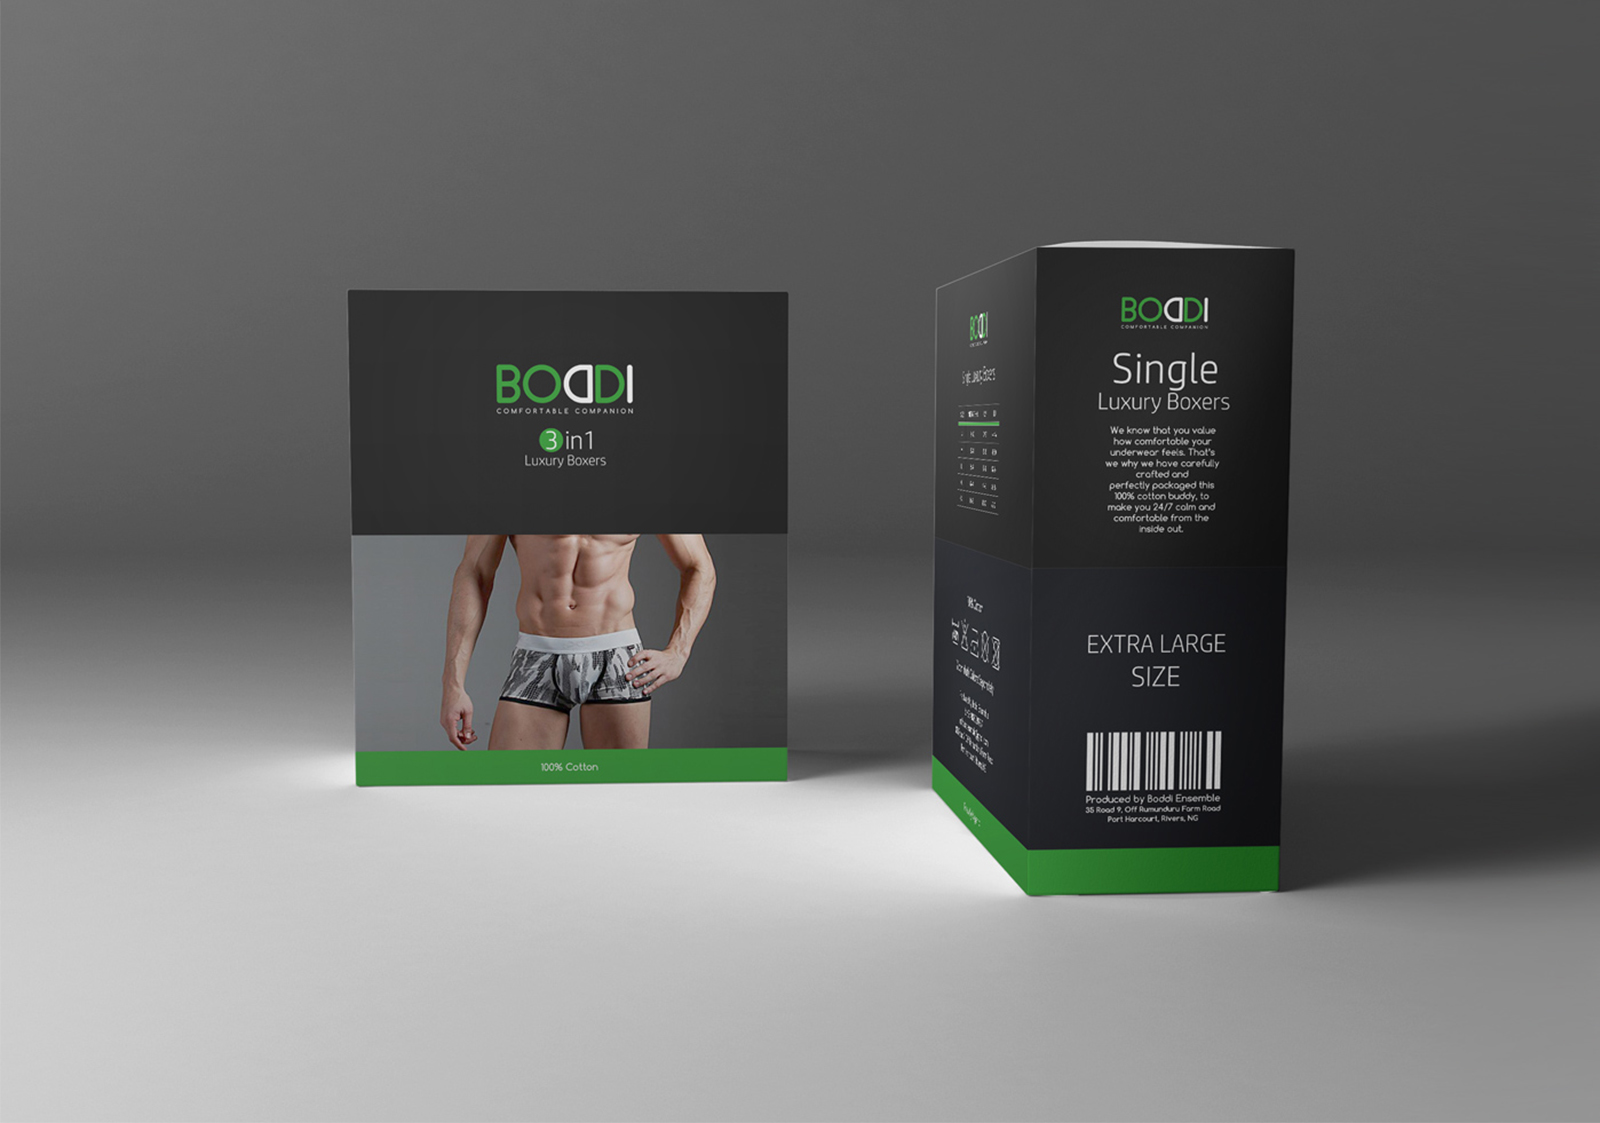 Boddi Product Package